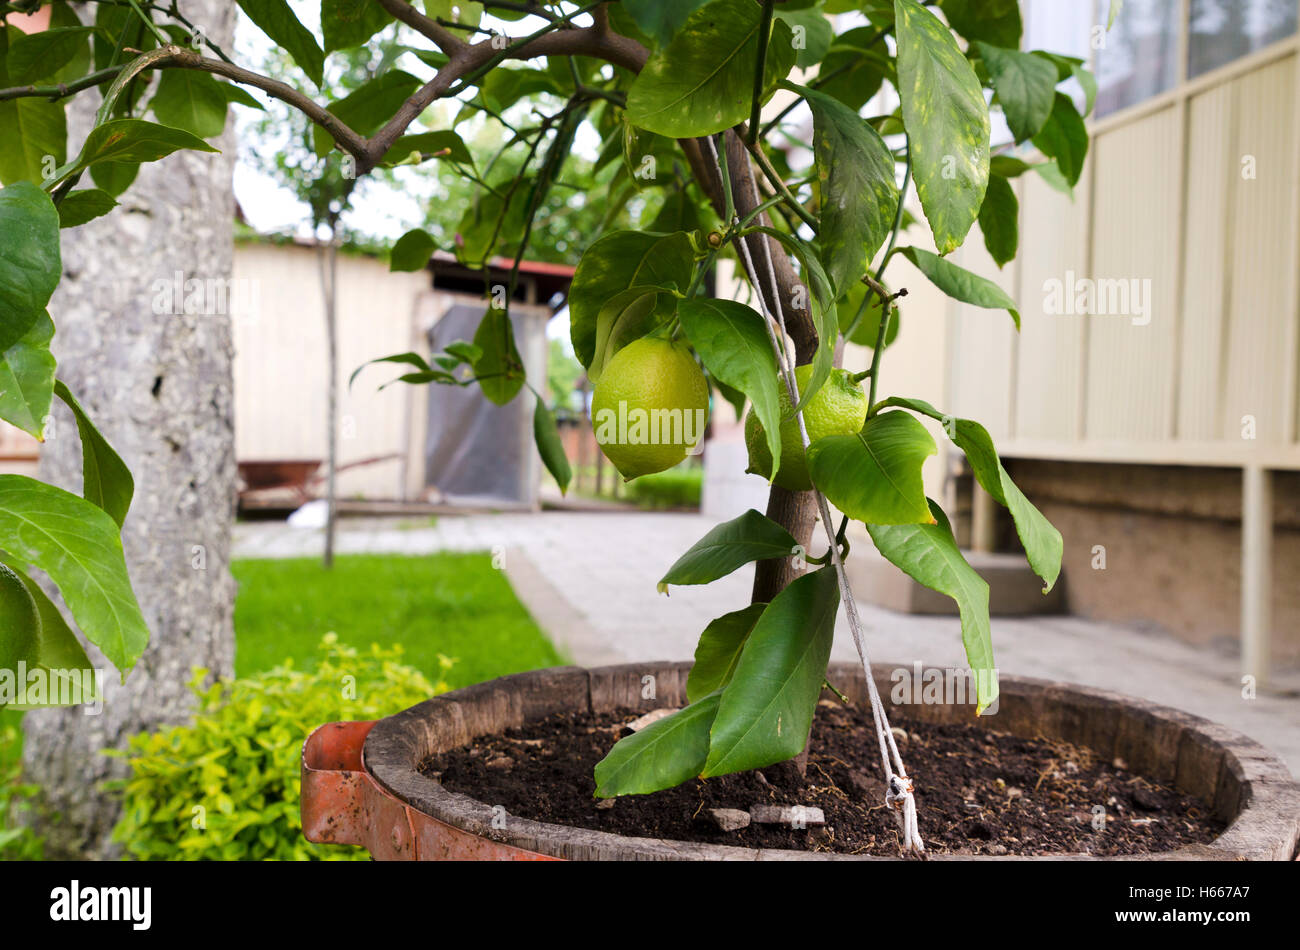 Lemon tree in a pot - Stock Image